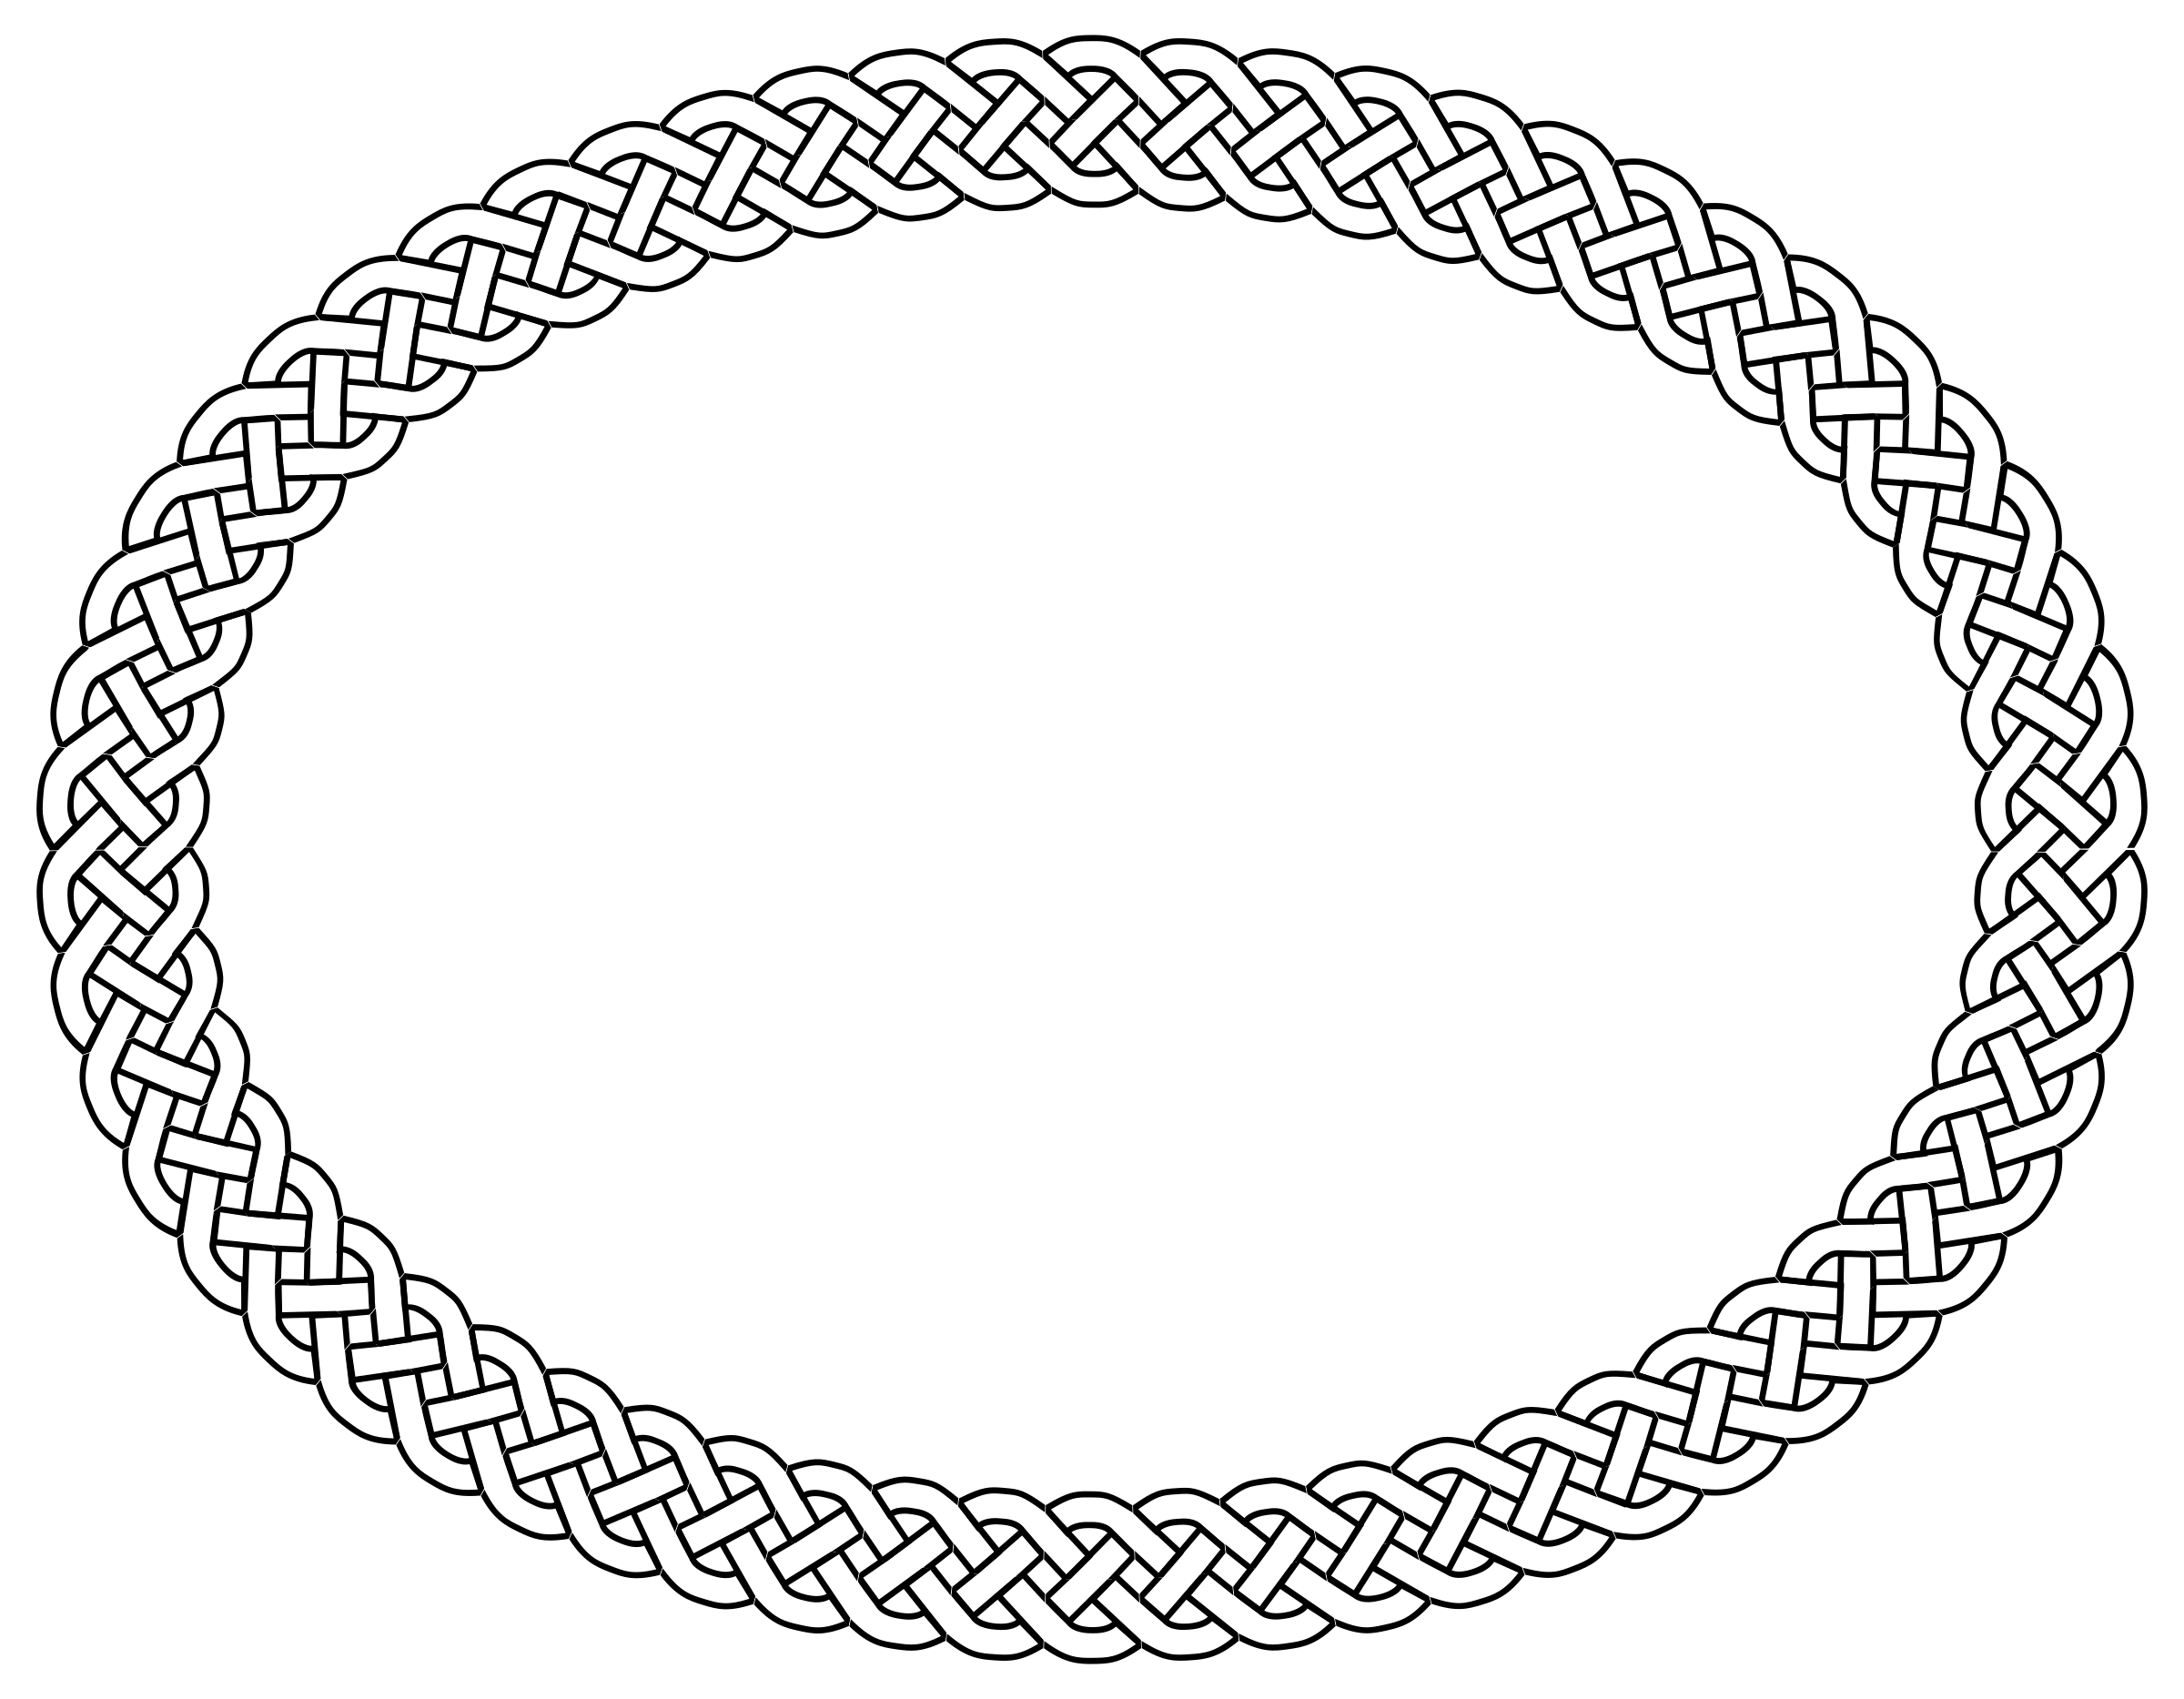 BIG IMAGE (PNG) - Oval PNG Black And White